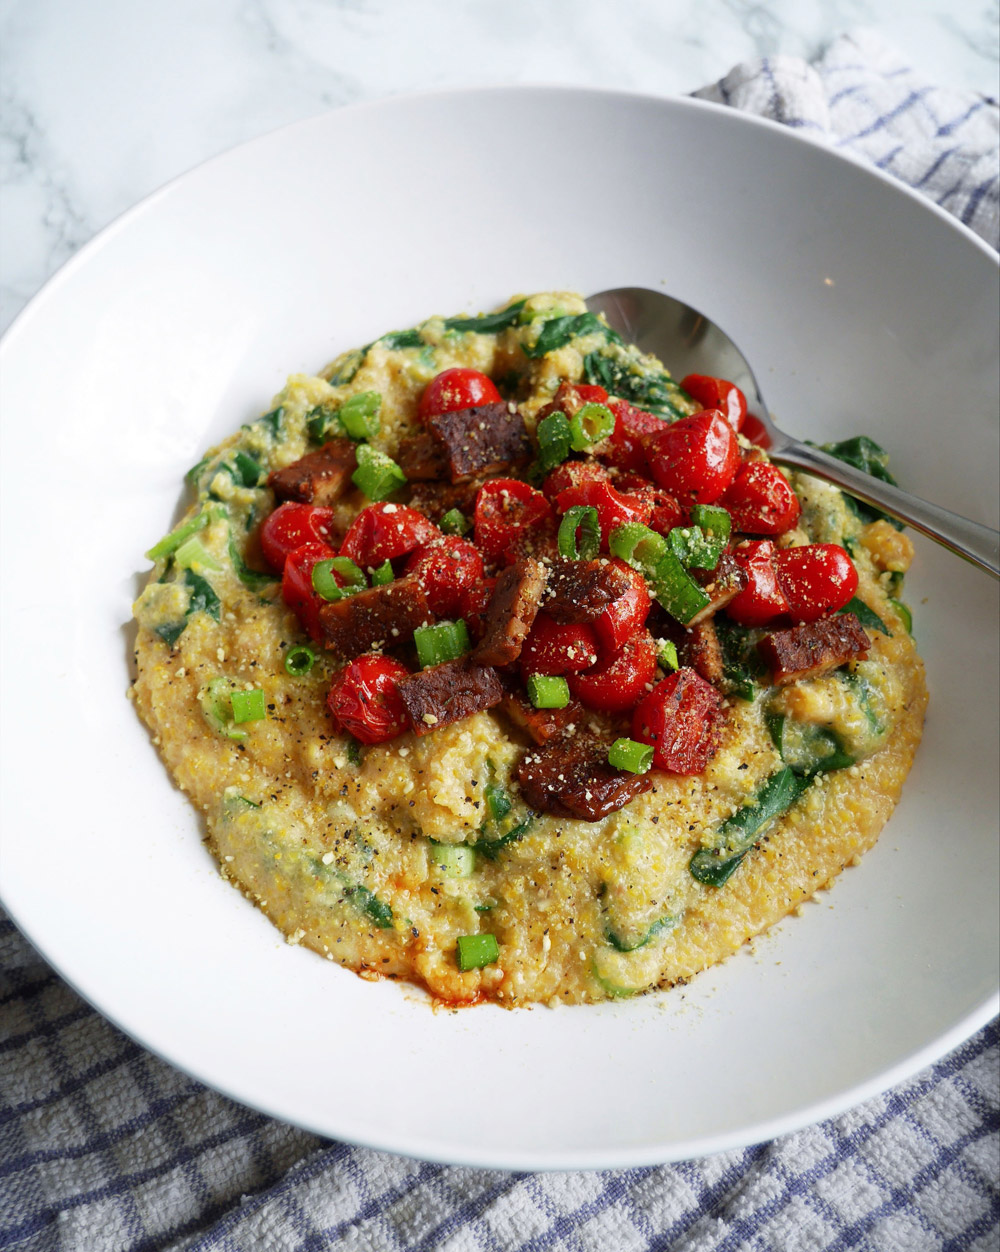 Vegan Polenta Corn Grits with Tempeh and Veggies Recipe